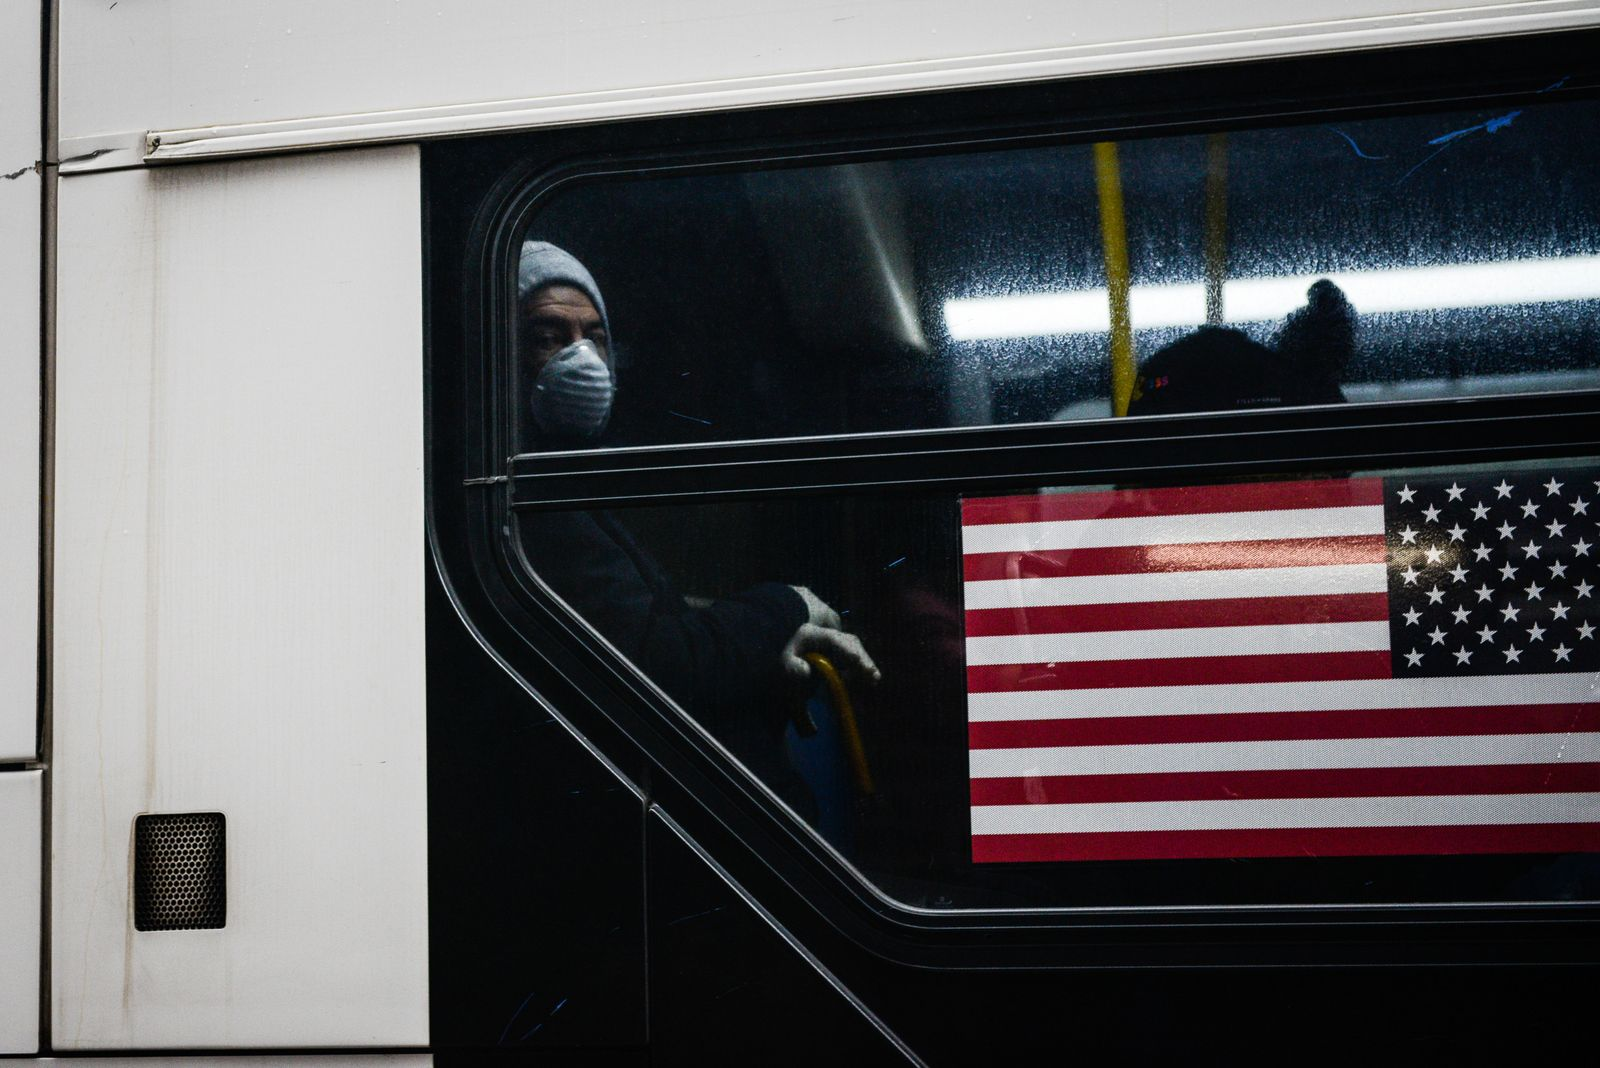 Riding a bus in Brooklyn on Sunday, March 29, 2020, amid the coronavirus pandemic. (Marian Carrasquero/The New York Times)